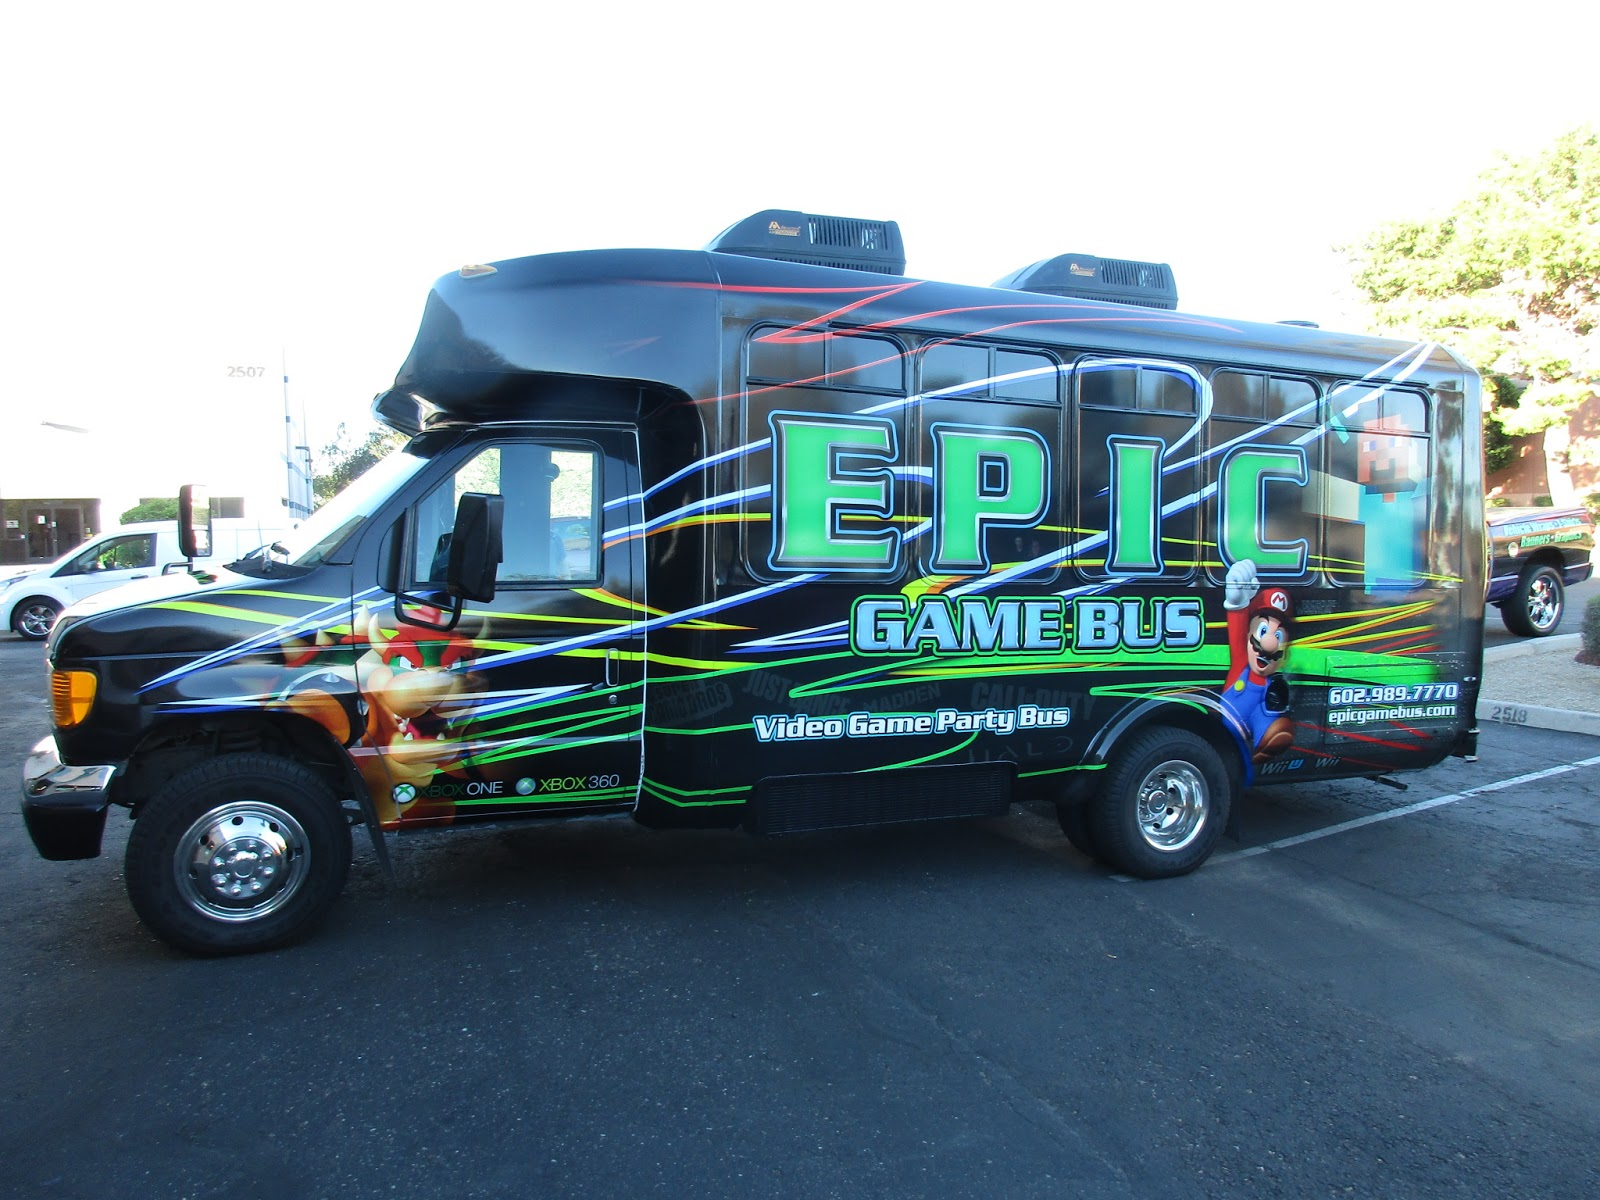 Vehicle Wraps and Screen Printing by Fast-Trac Designs and